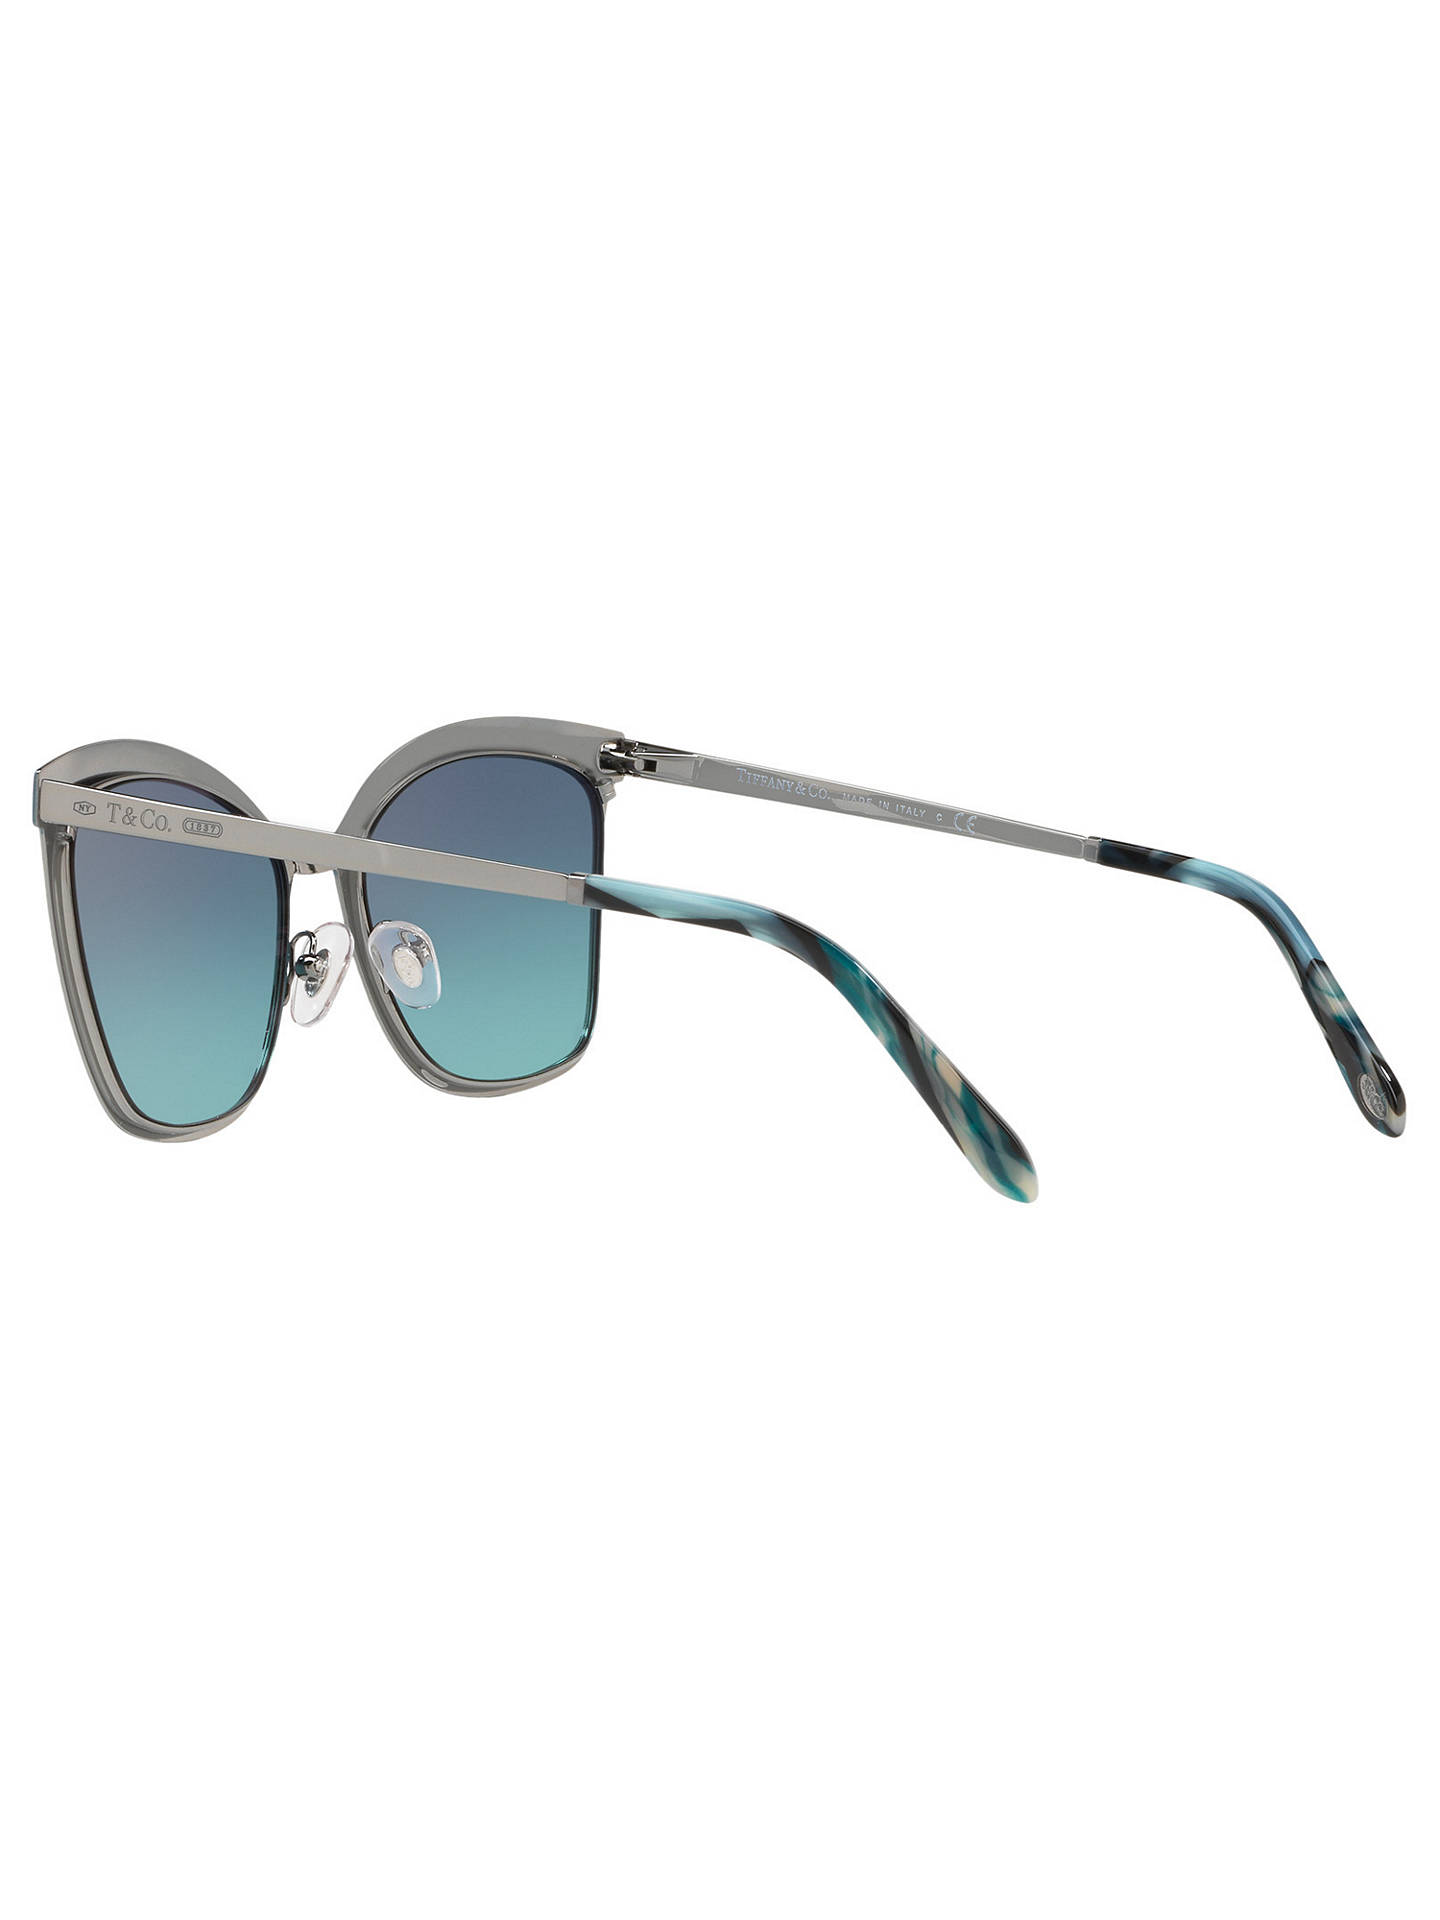 Buy Tiffany & Co TF3060 Square Sunglasses, Silver/Blue Gradient Online at johnlewis.com